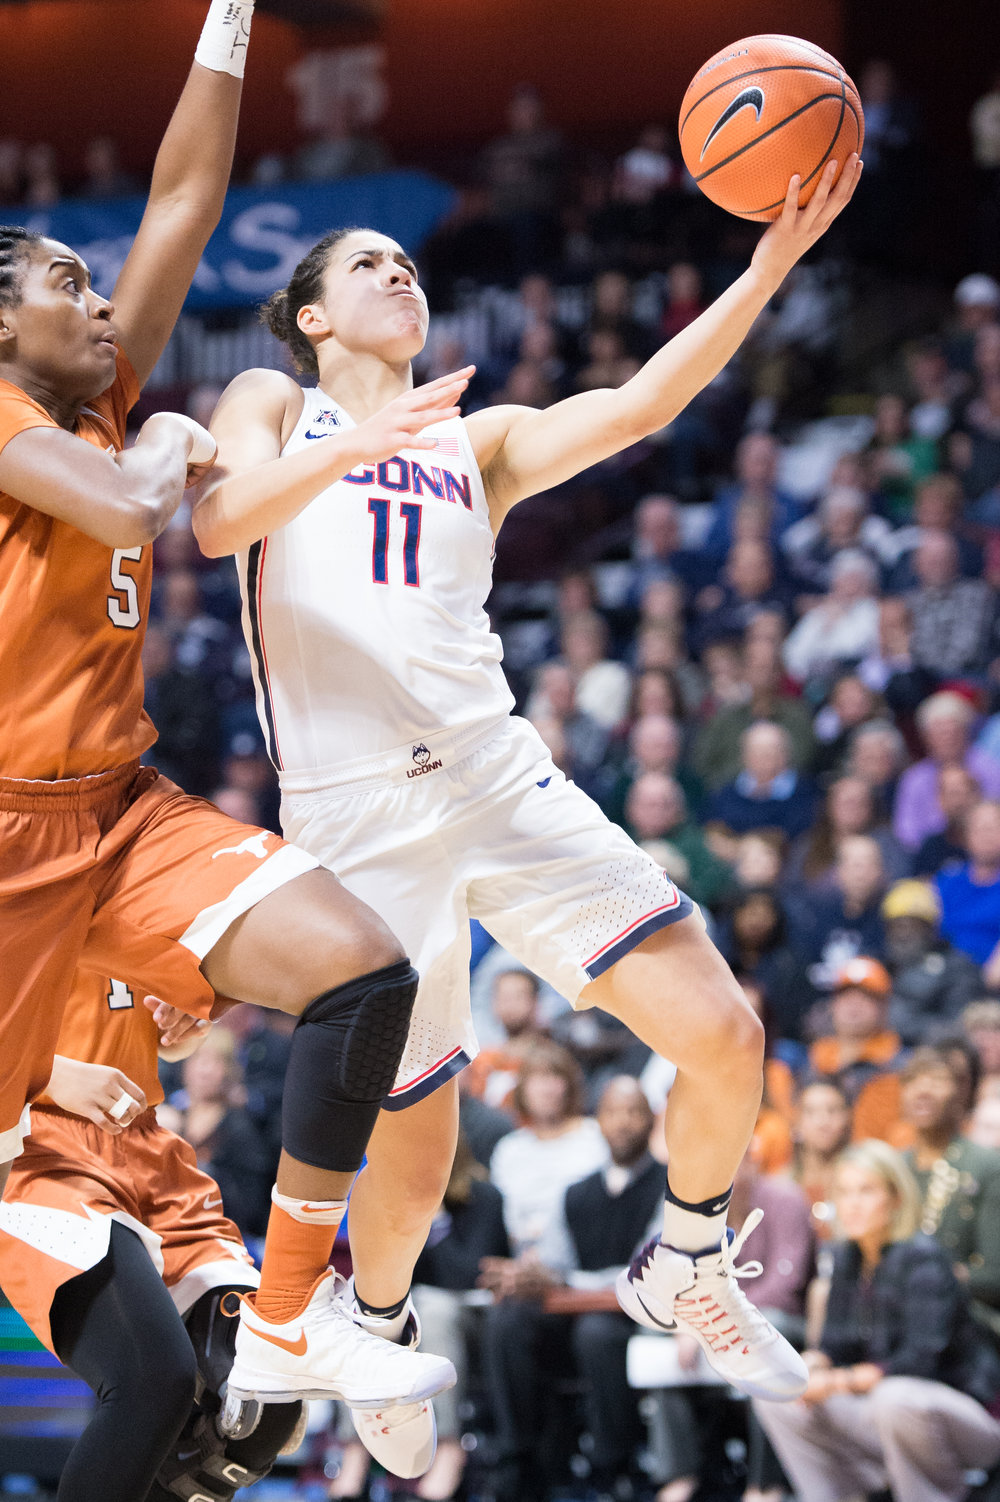 UConn Women's Basketball vs. Texas #1839 December 04, 2016.jpg